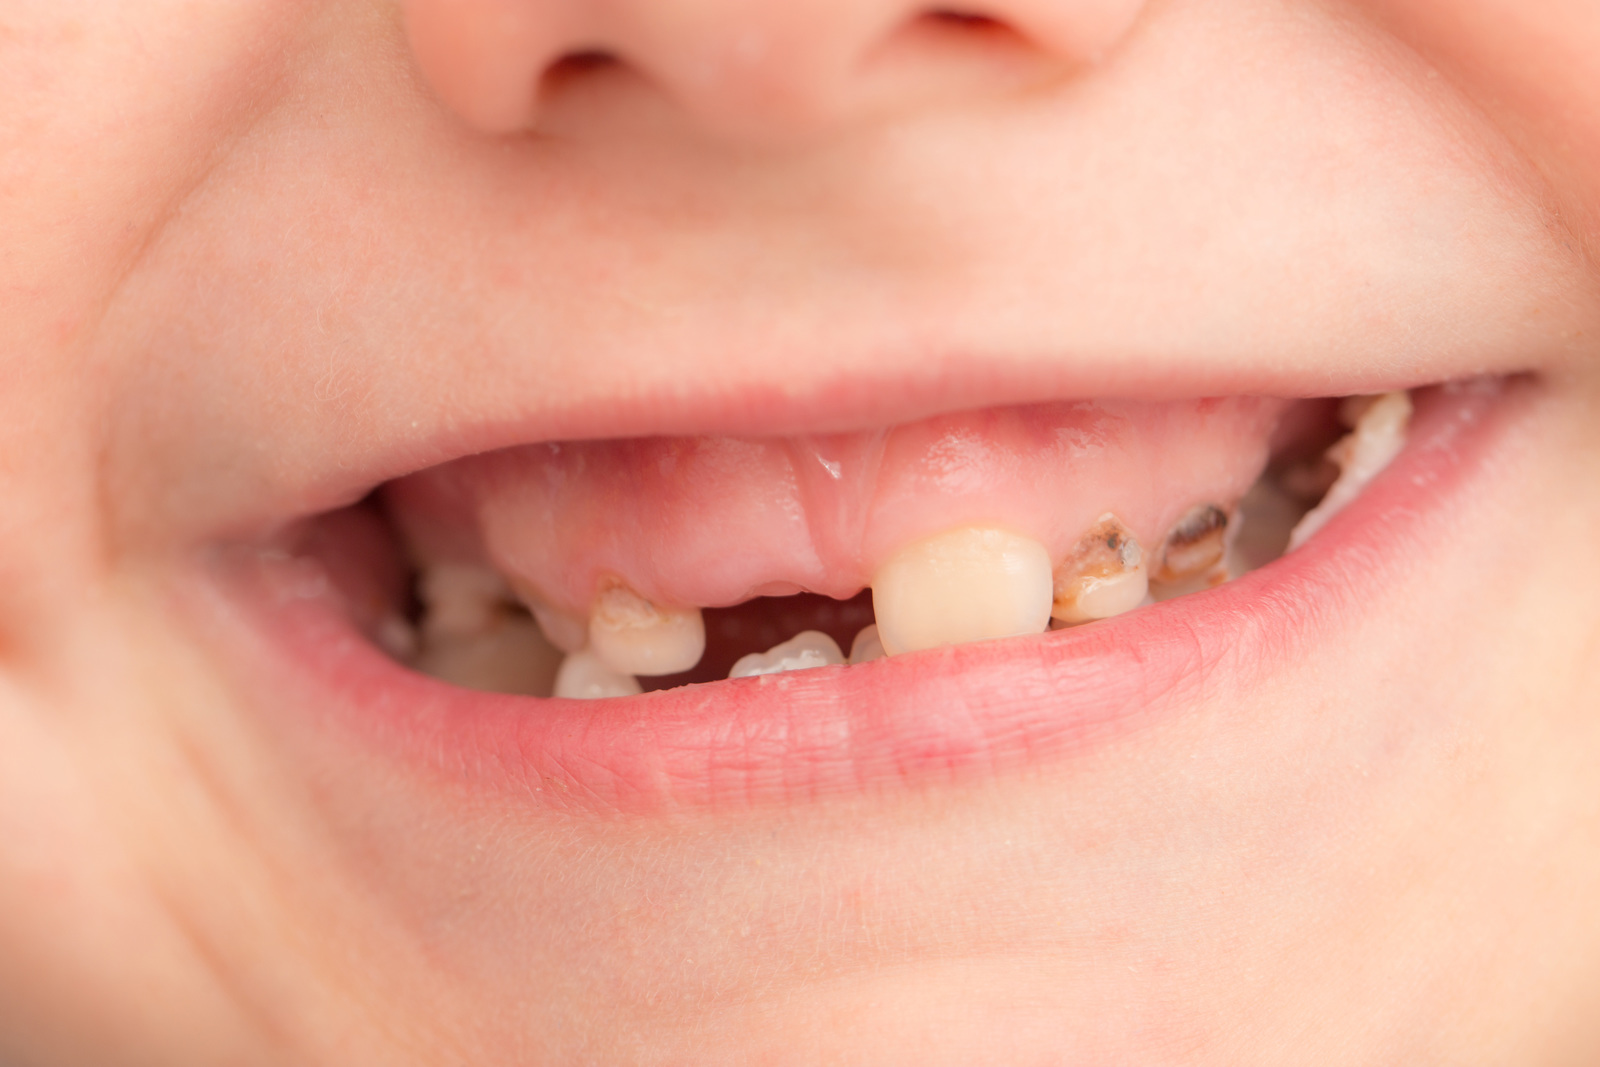 Child tooth decay crisis discussed by MPs and Ministers ...